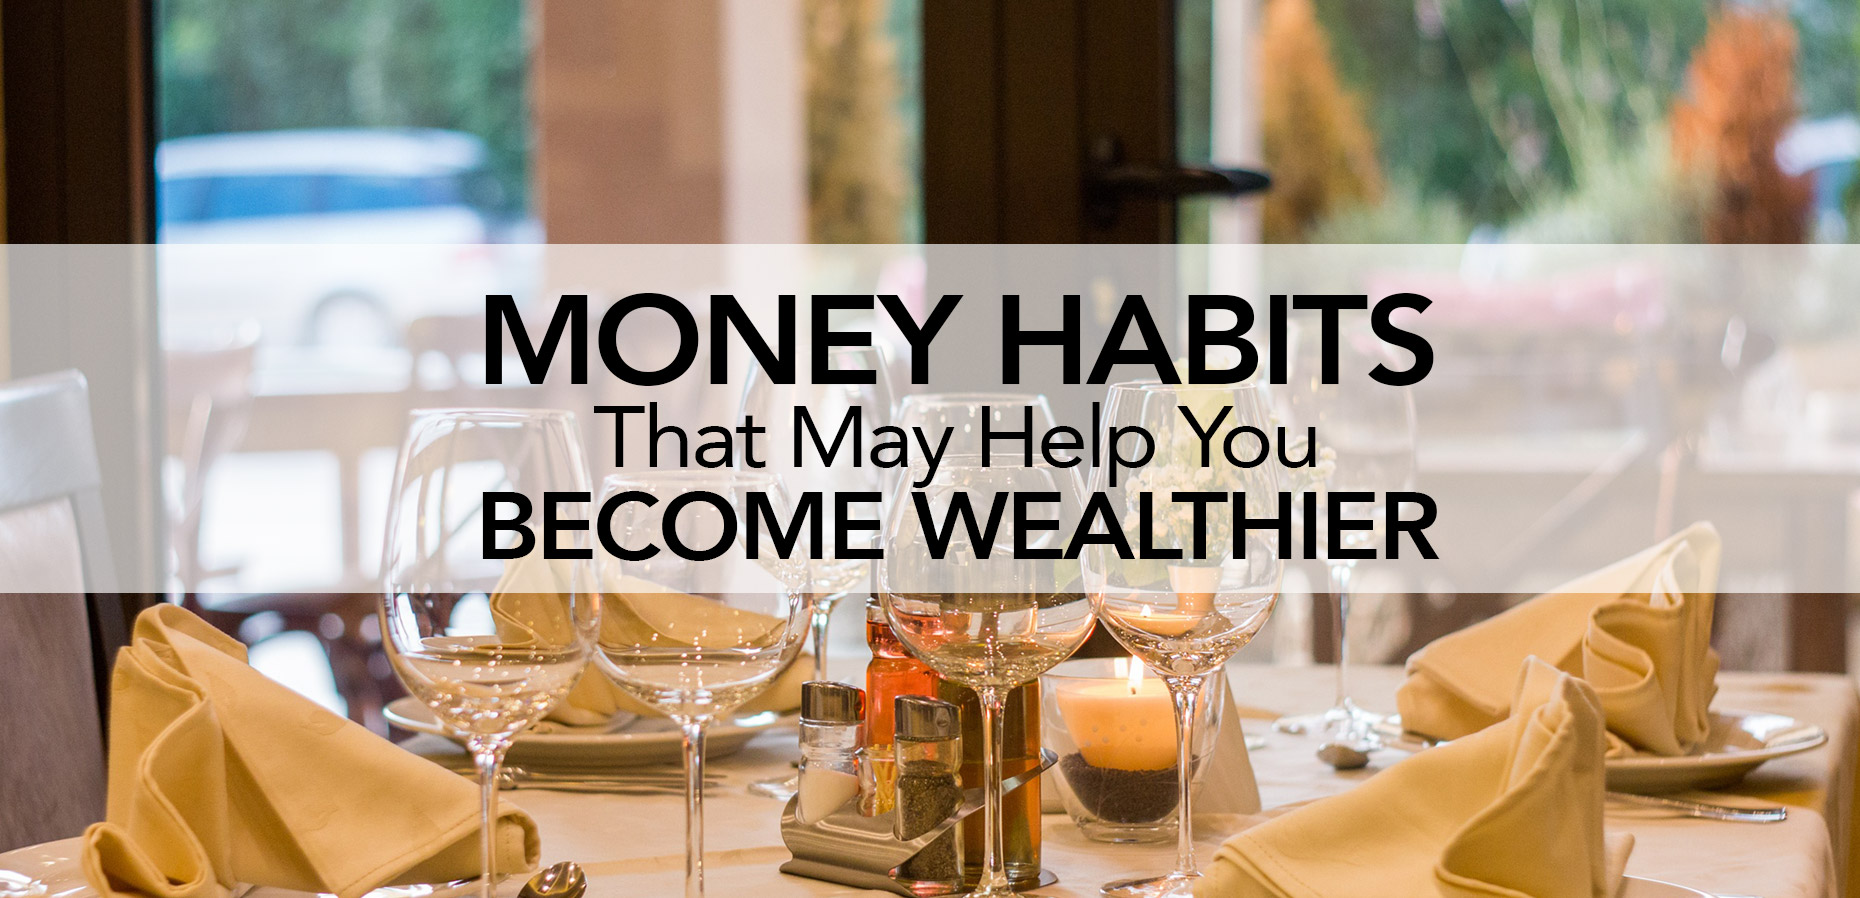 Money Habits That May Help You Become Wealthier